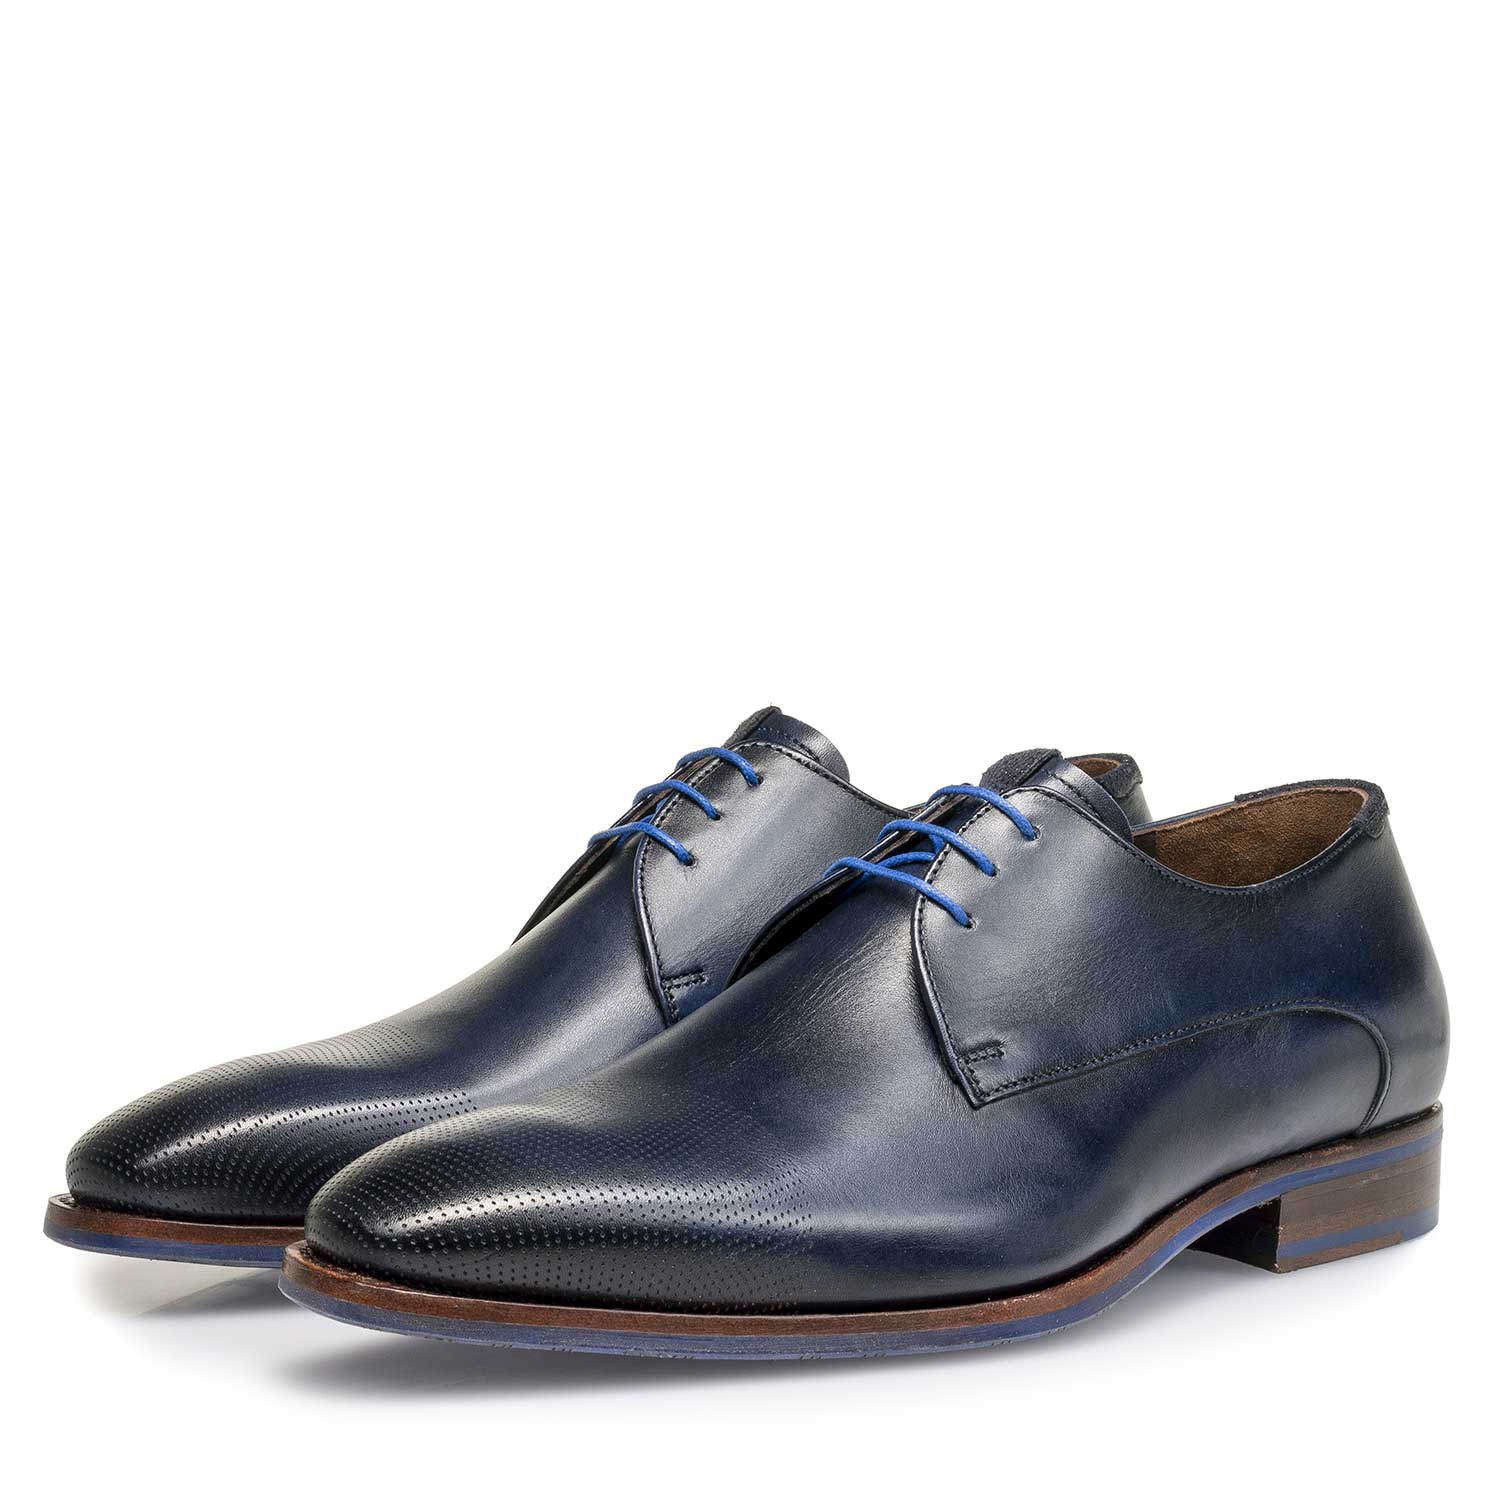 18088/01 - Dark blue calf leather lace shoe